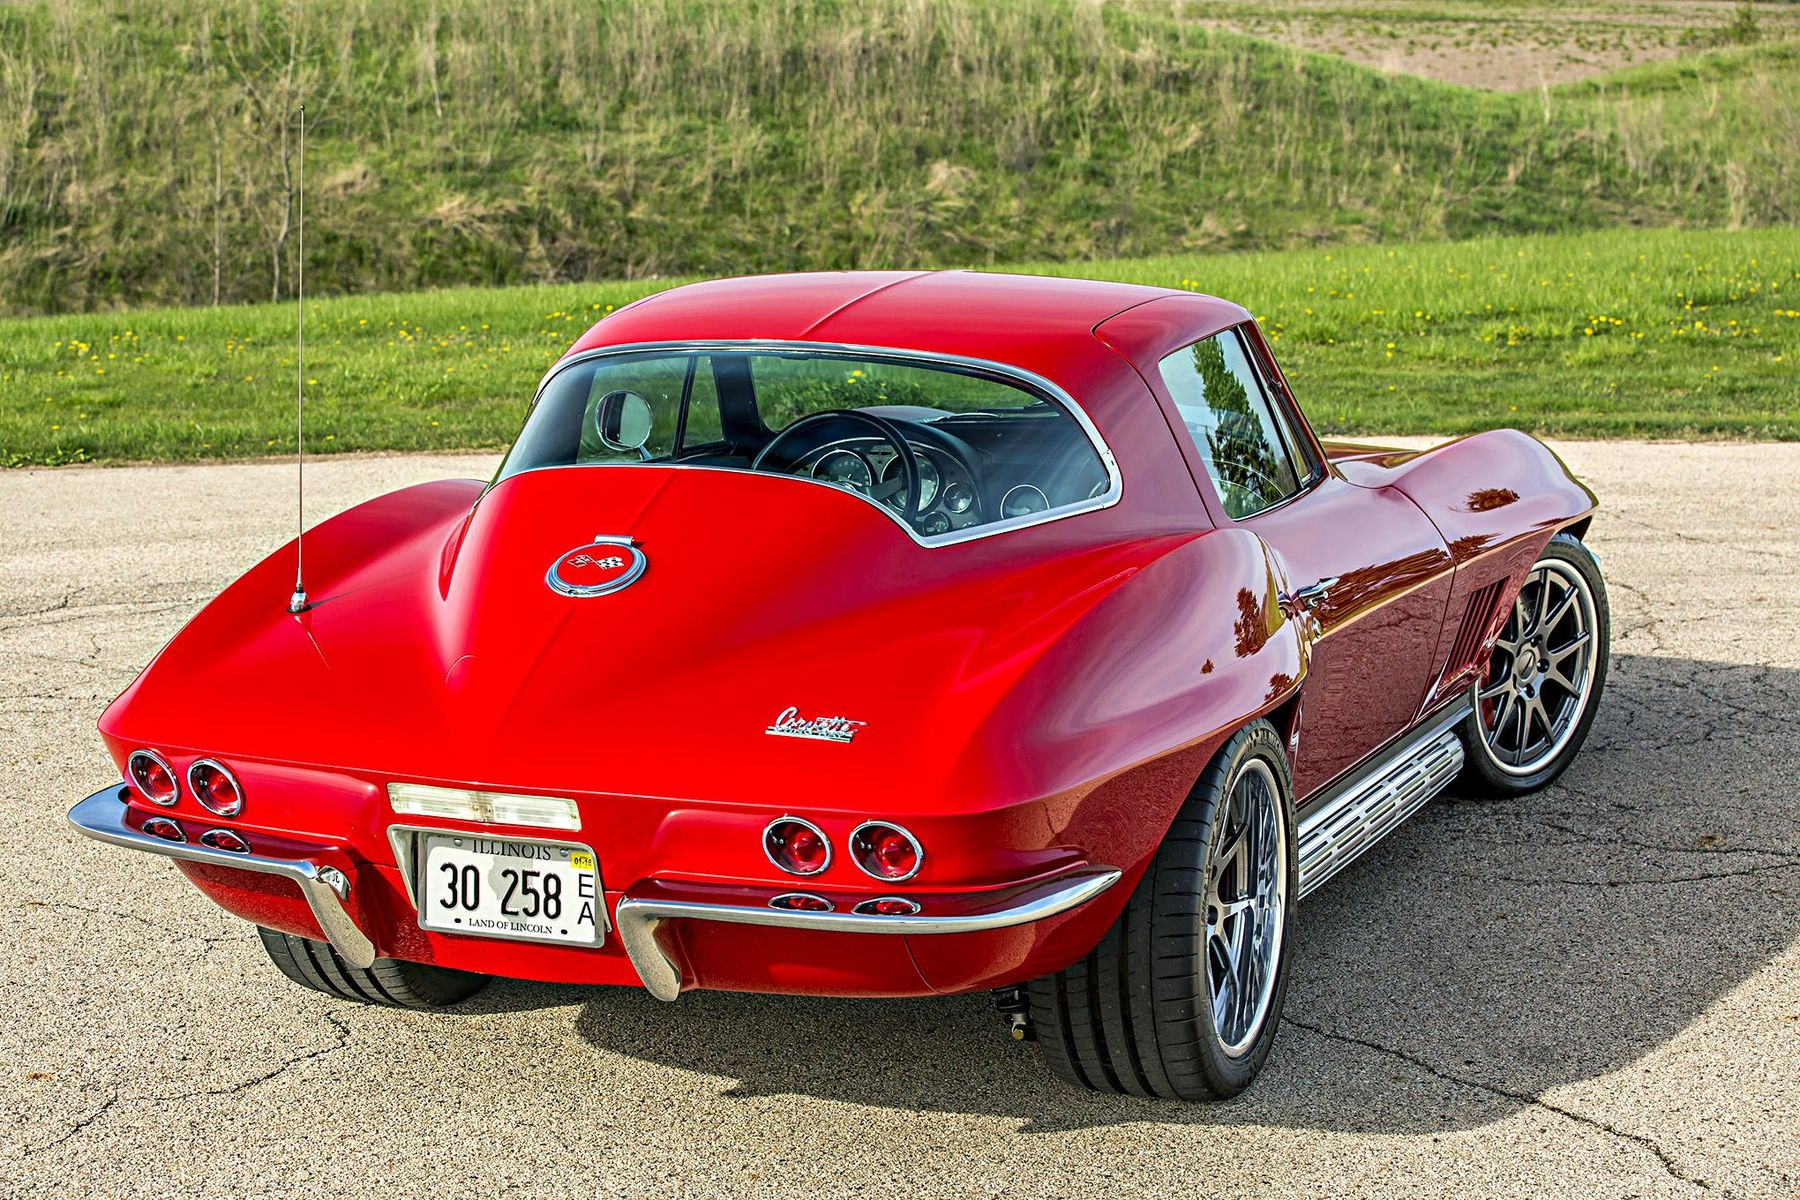 1967 Chevrolet Corvette Stingray | Paul's Schwartz Performance '67 Corvette Sting Ray Widebody on Forgeline GA3C Wheels